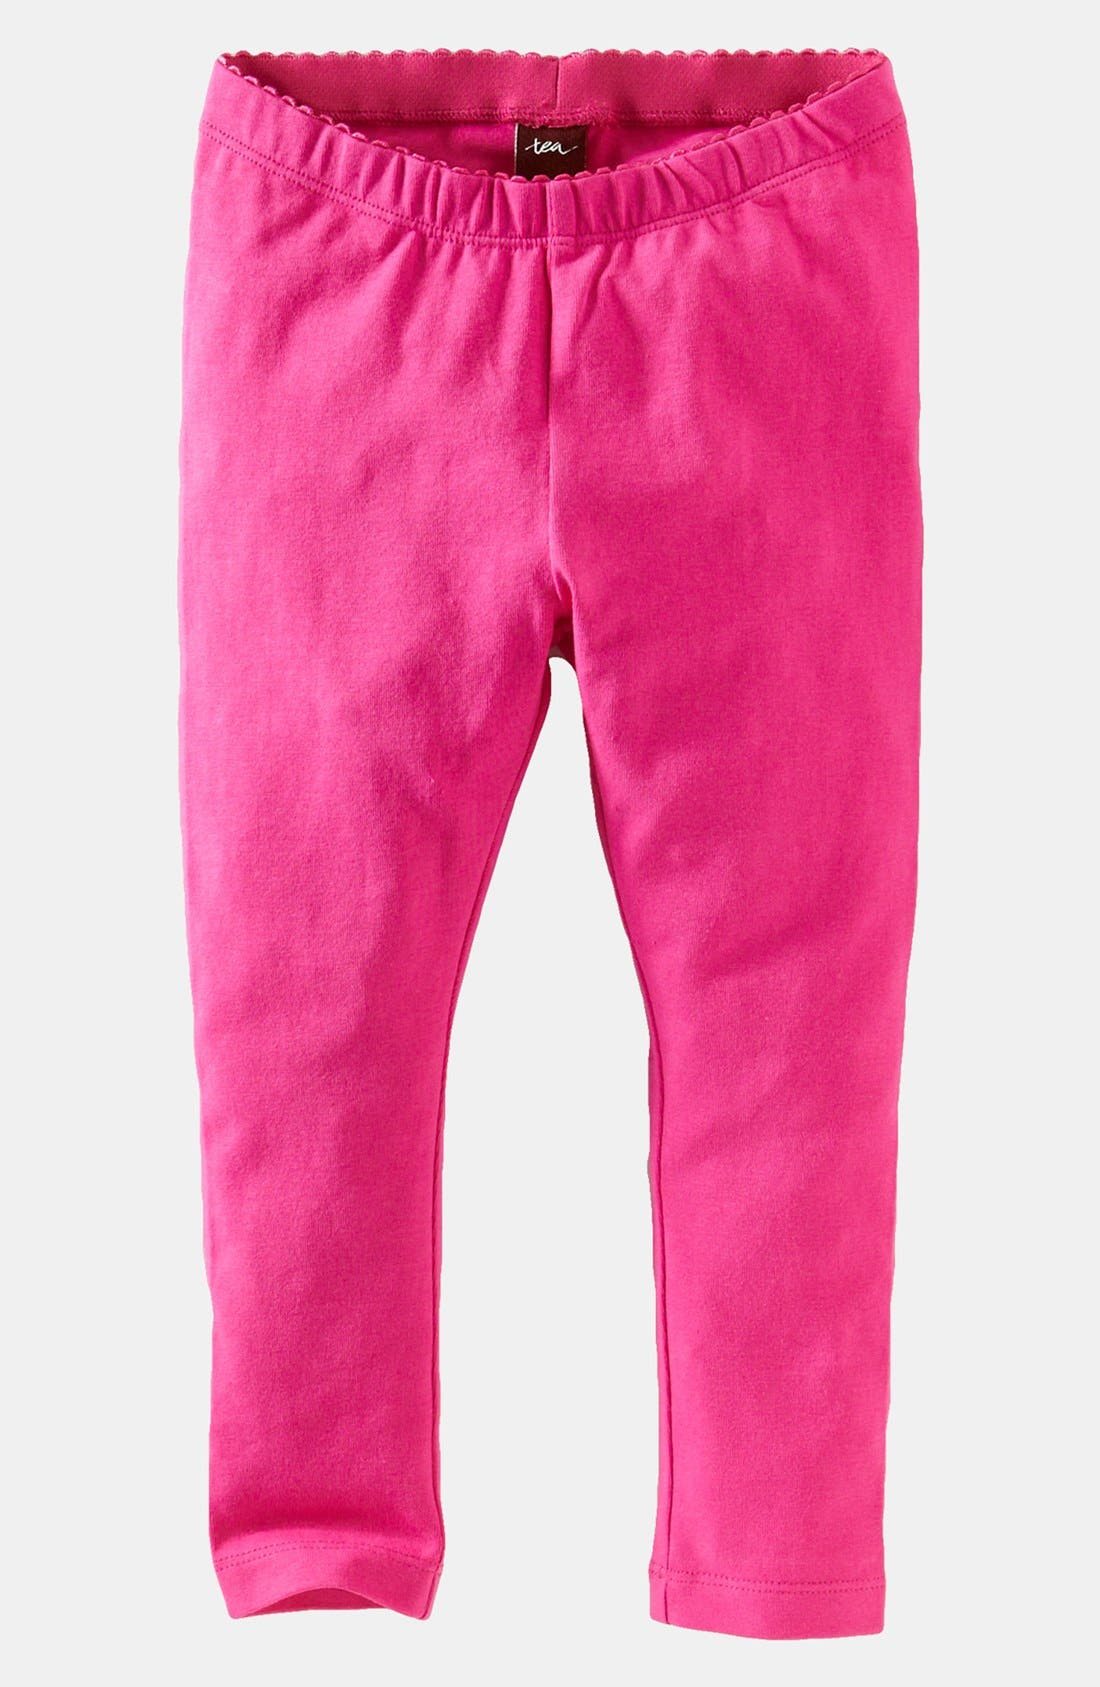 Main Image - Tea Collection Skinny Stretch Leggings (Toddler Girls)